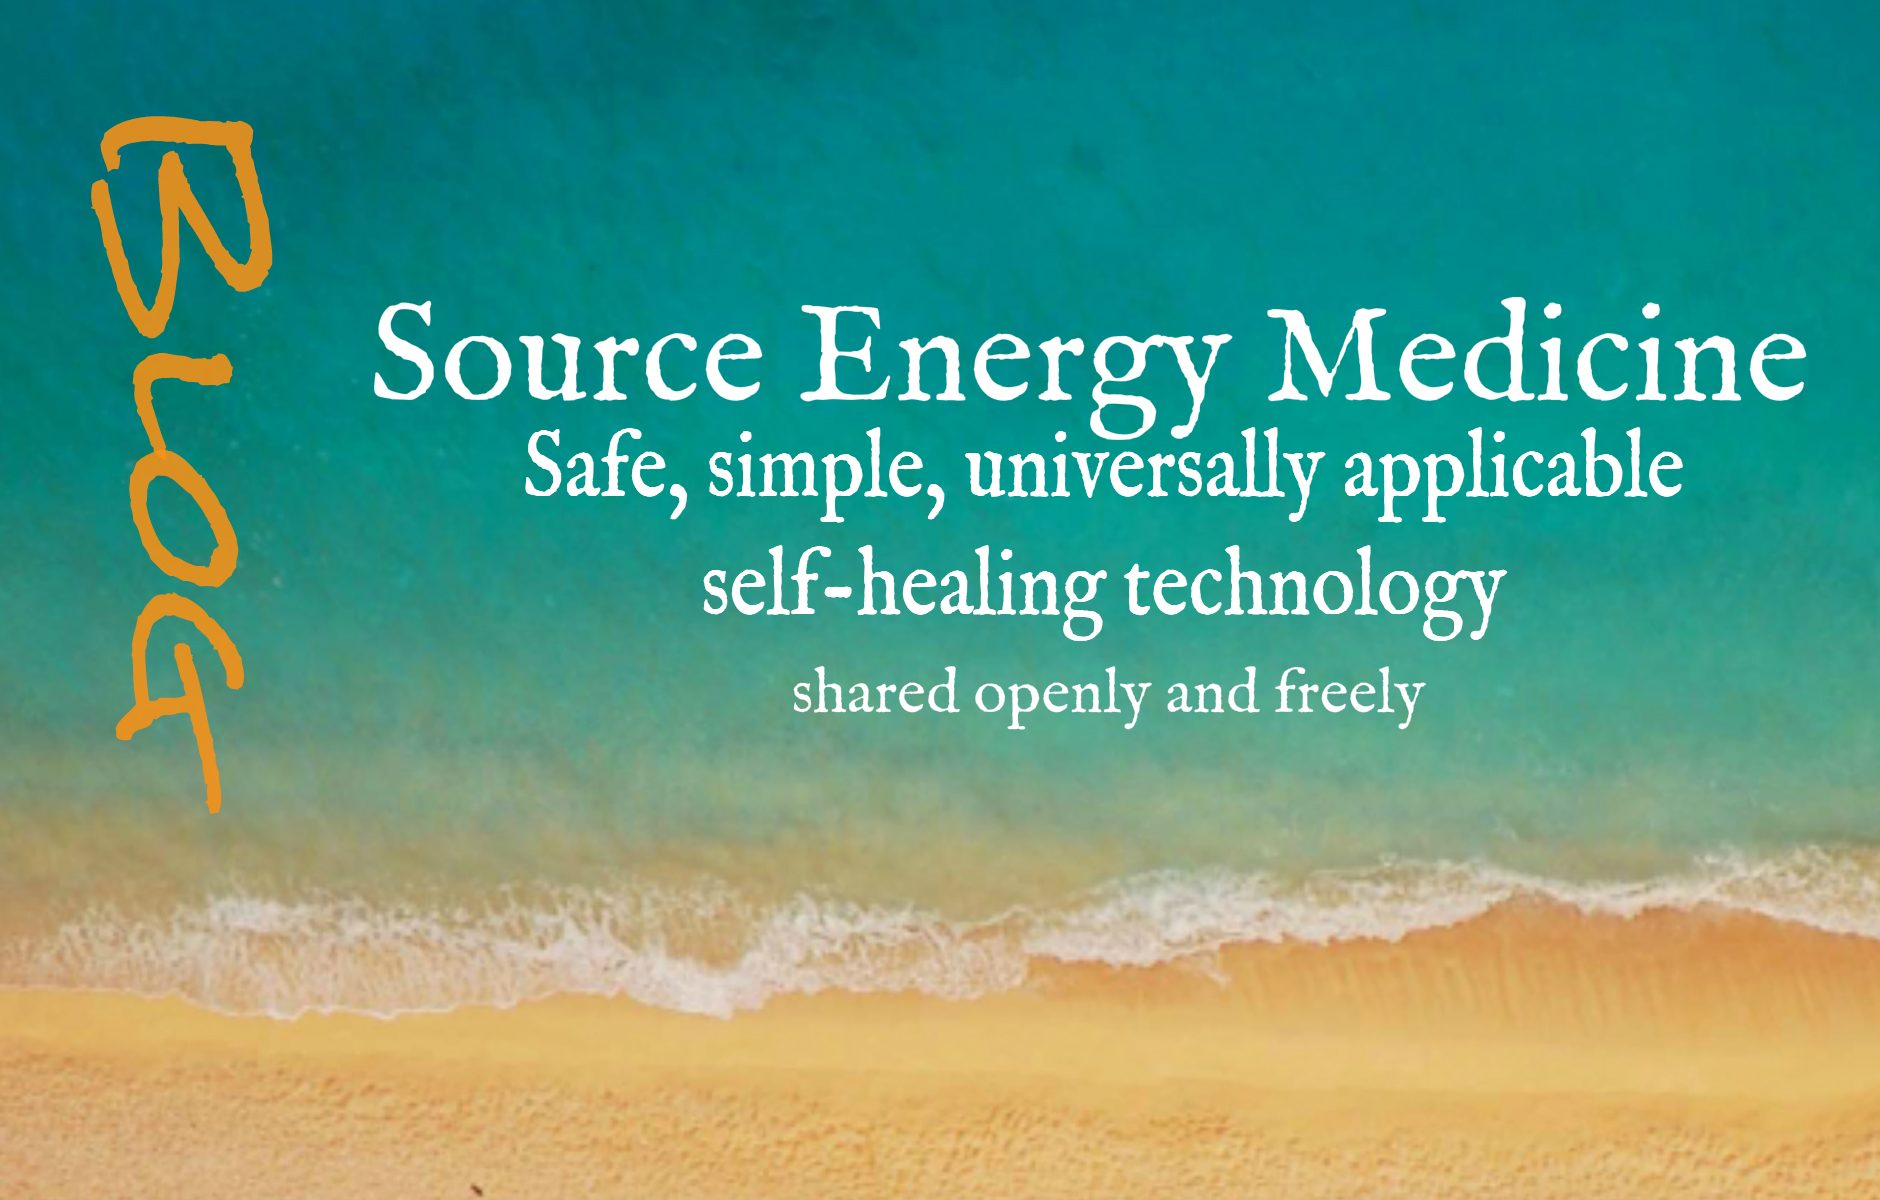 source-energy-medicine-blog-hero-image-blue-water-golden-sand-beach